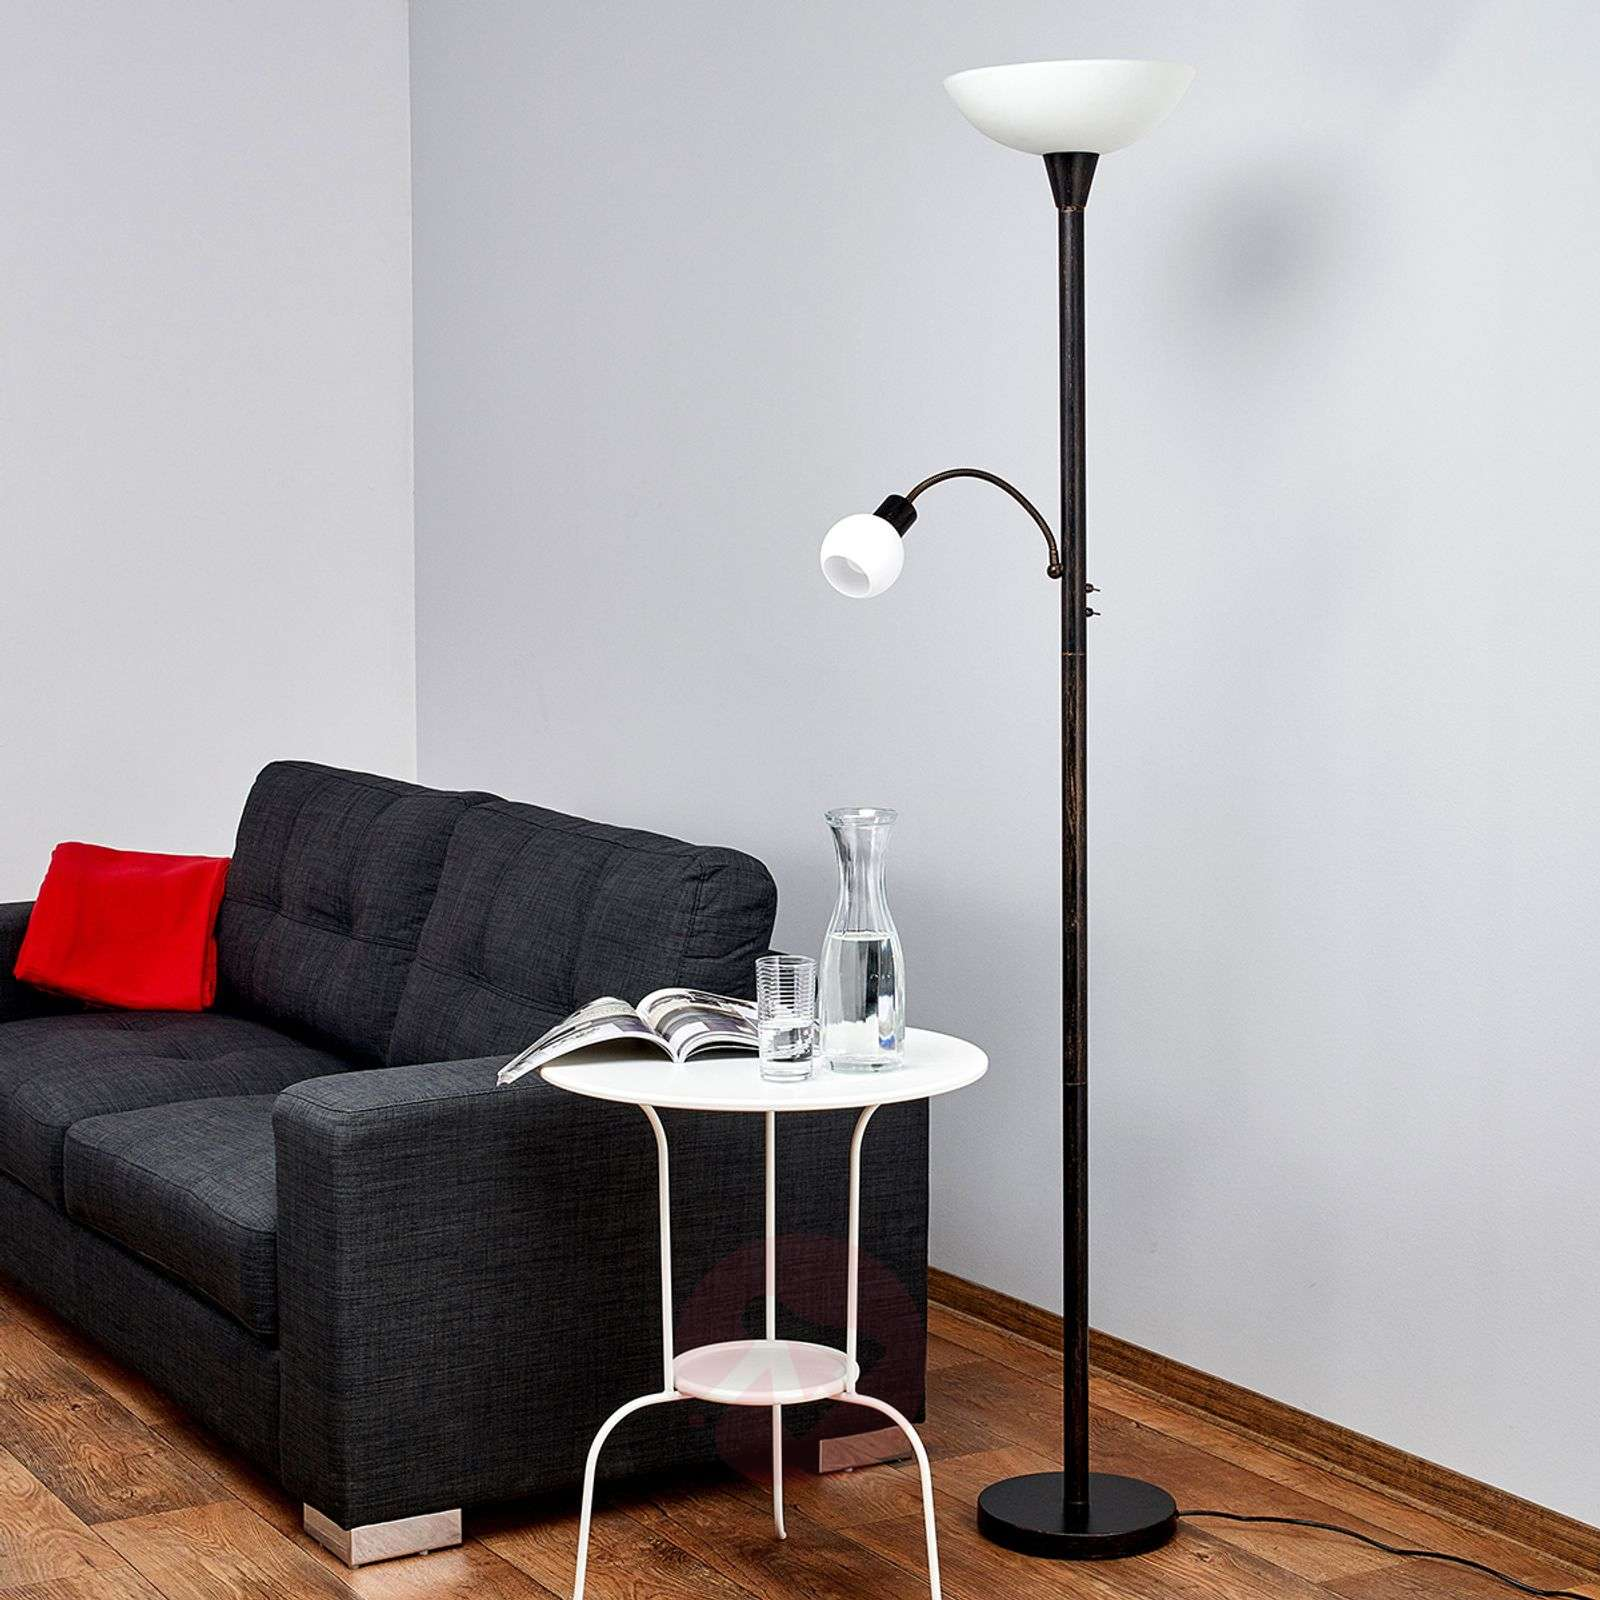 lampadaire led elaina couleur rouille avec liseuse. Black Bedroom Furniture Sets. Home Design Ideas